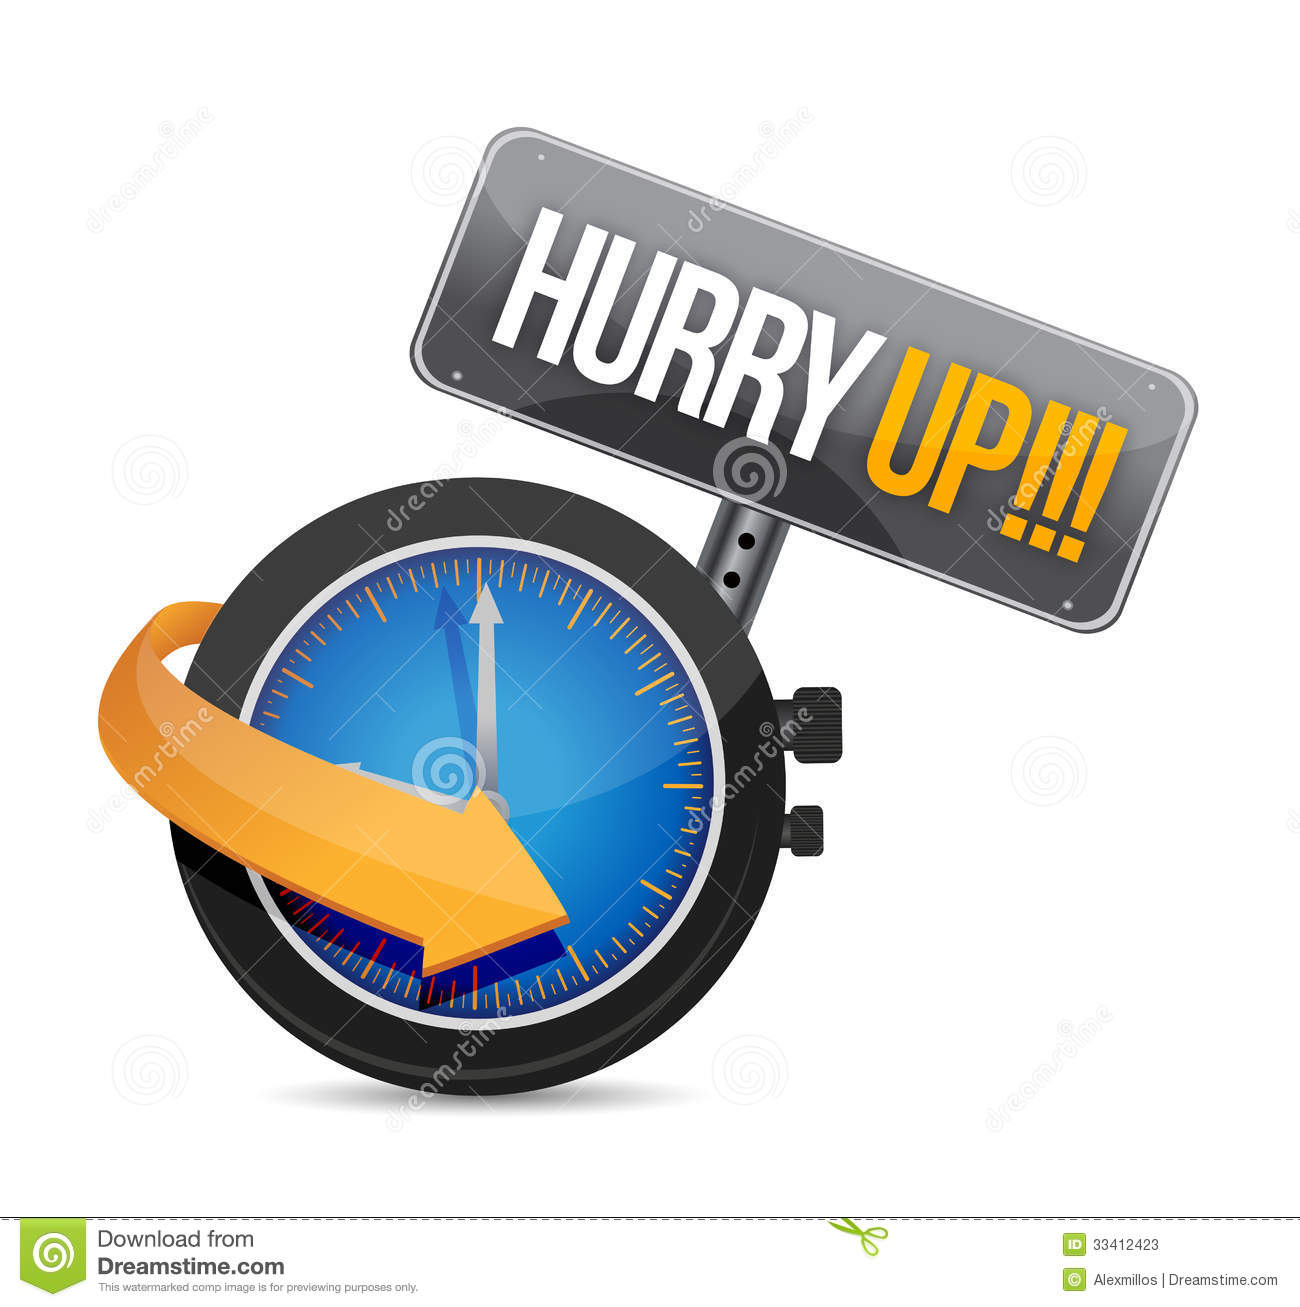 Hurry up watch message illustration design over a white background.